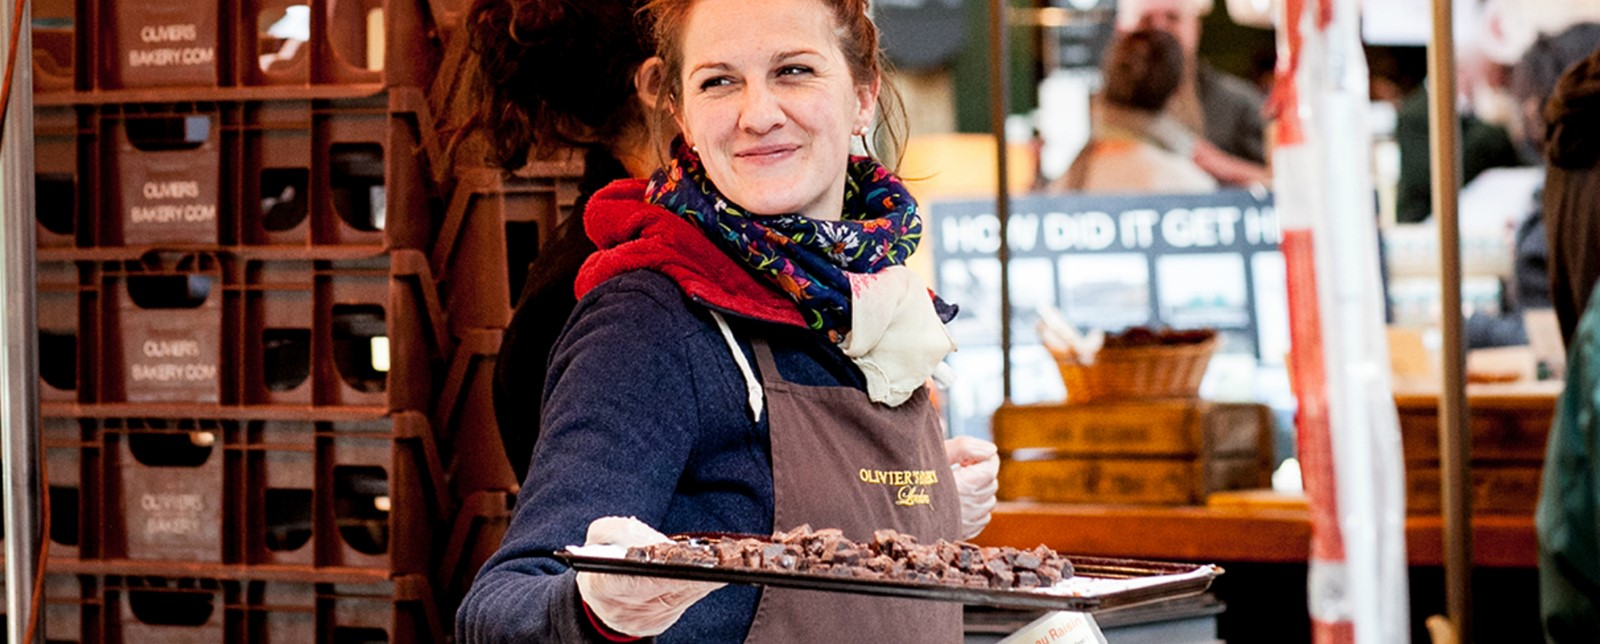 A smiling market trader holding a tray of sweets at Olivier's Bakery